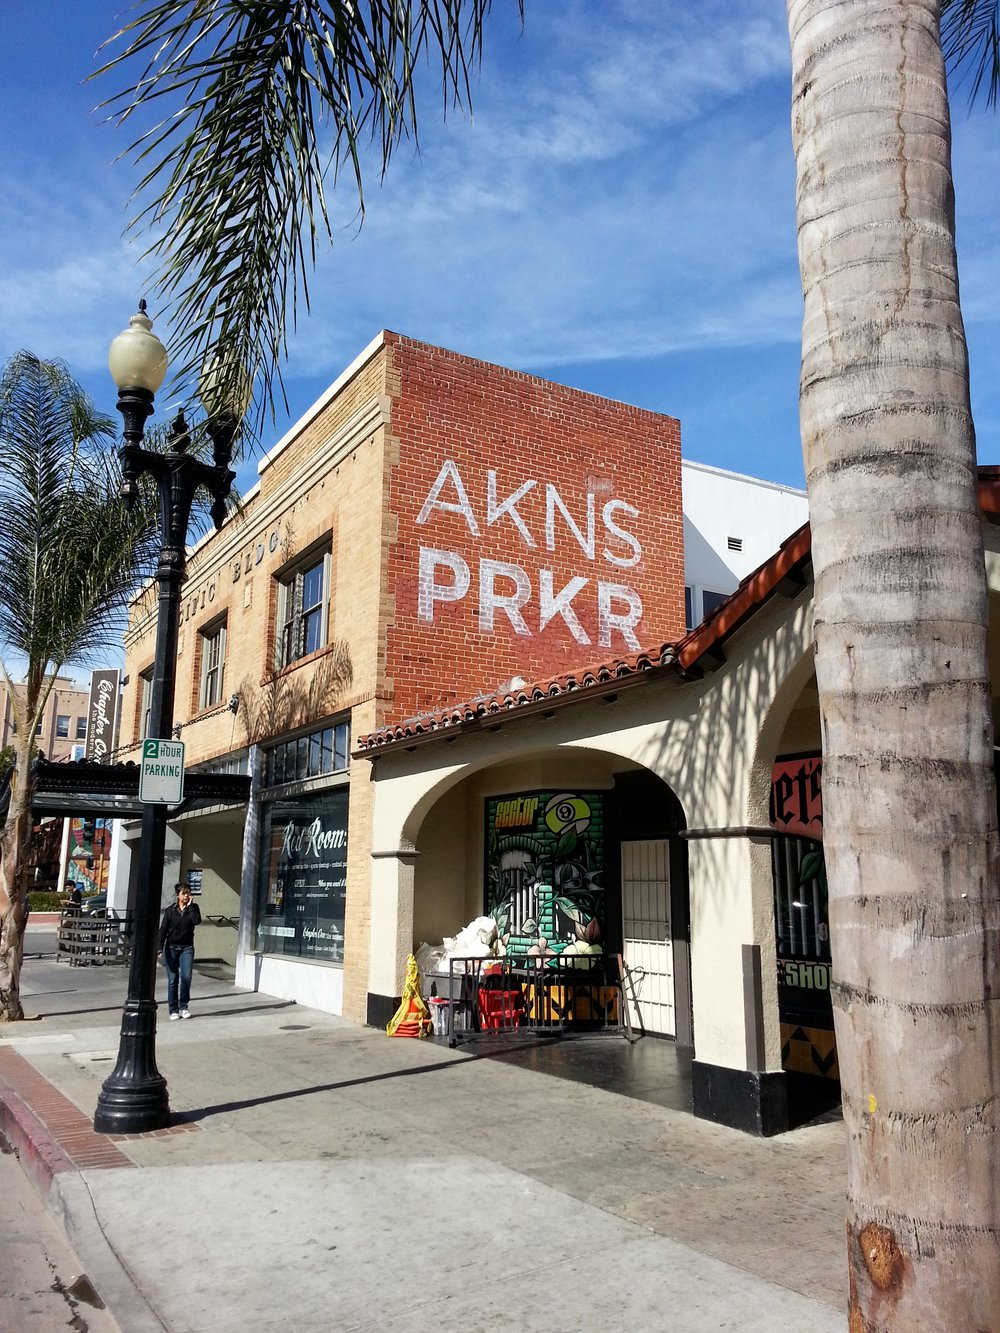 Akins Parker hand painted distressed ghost sign